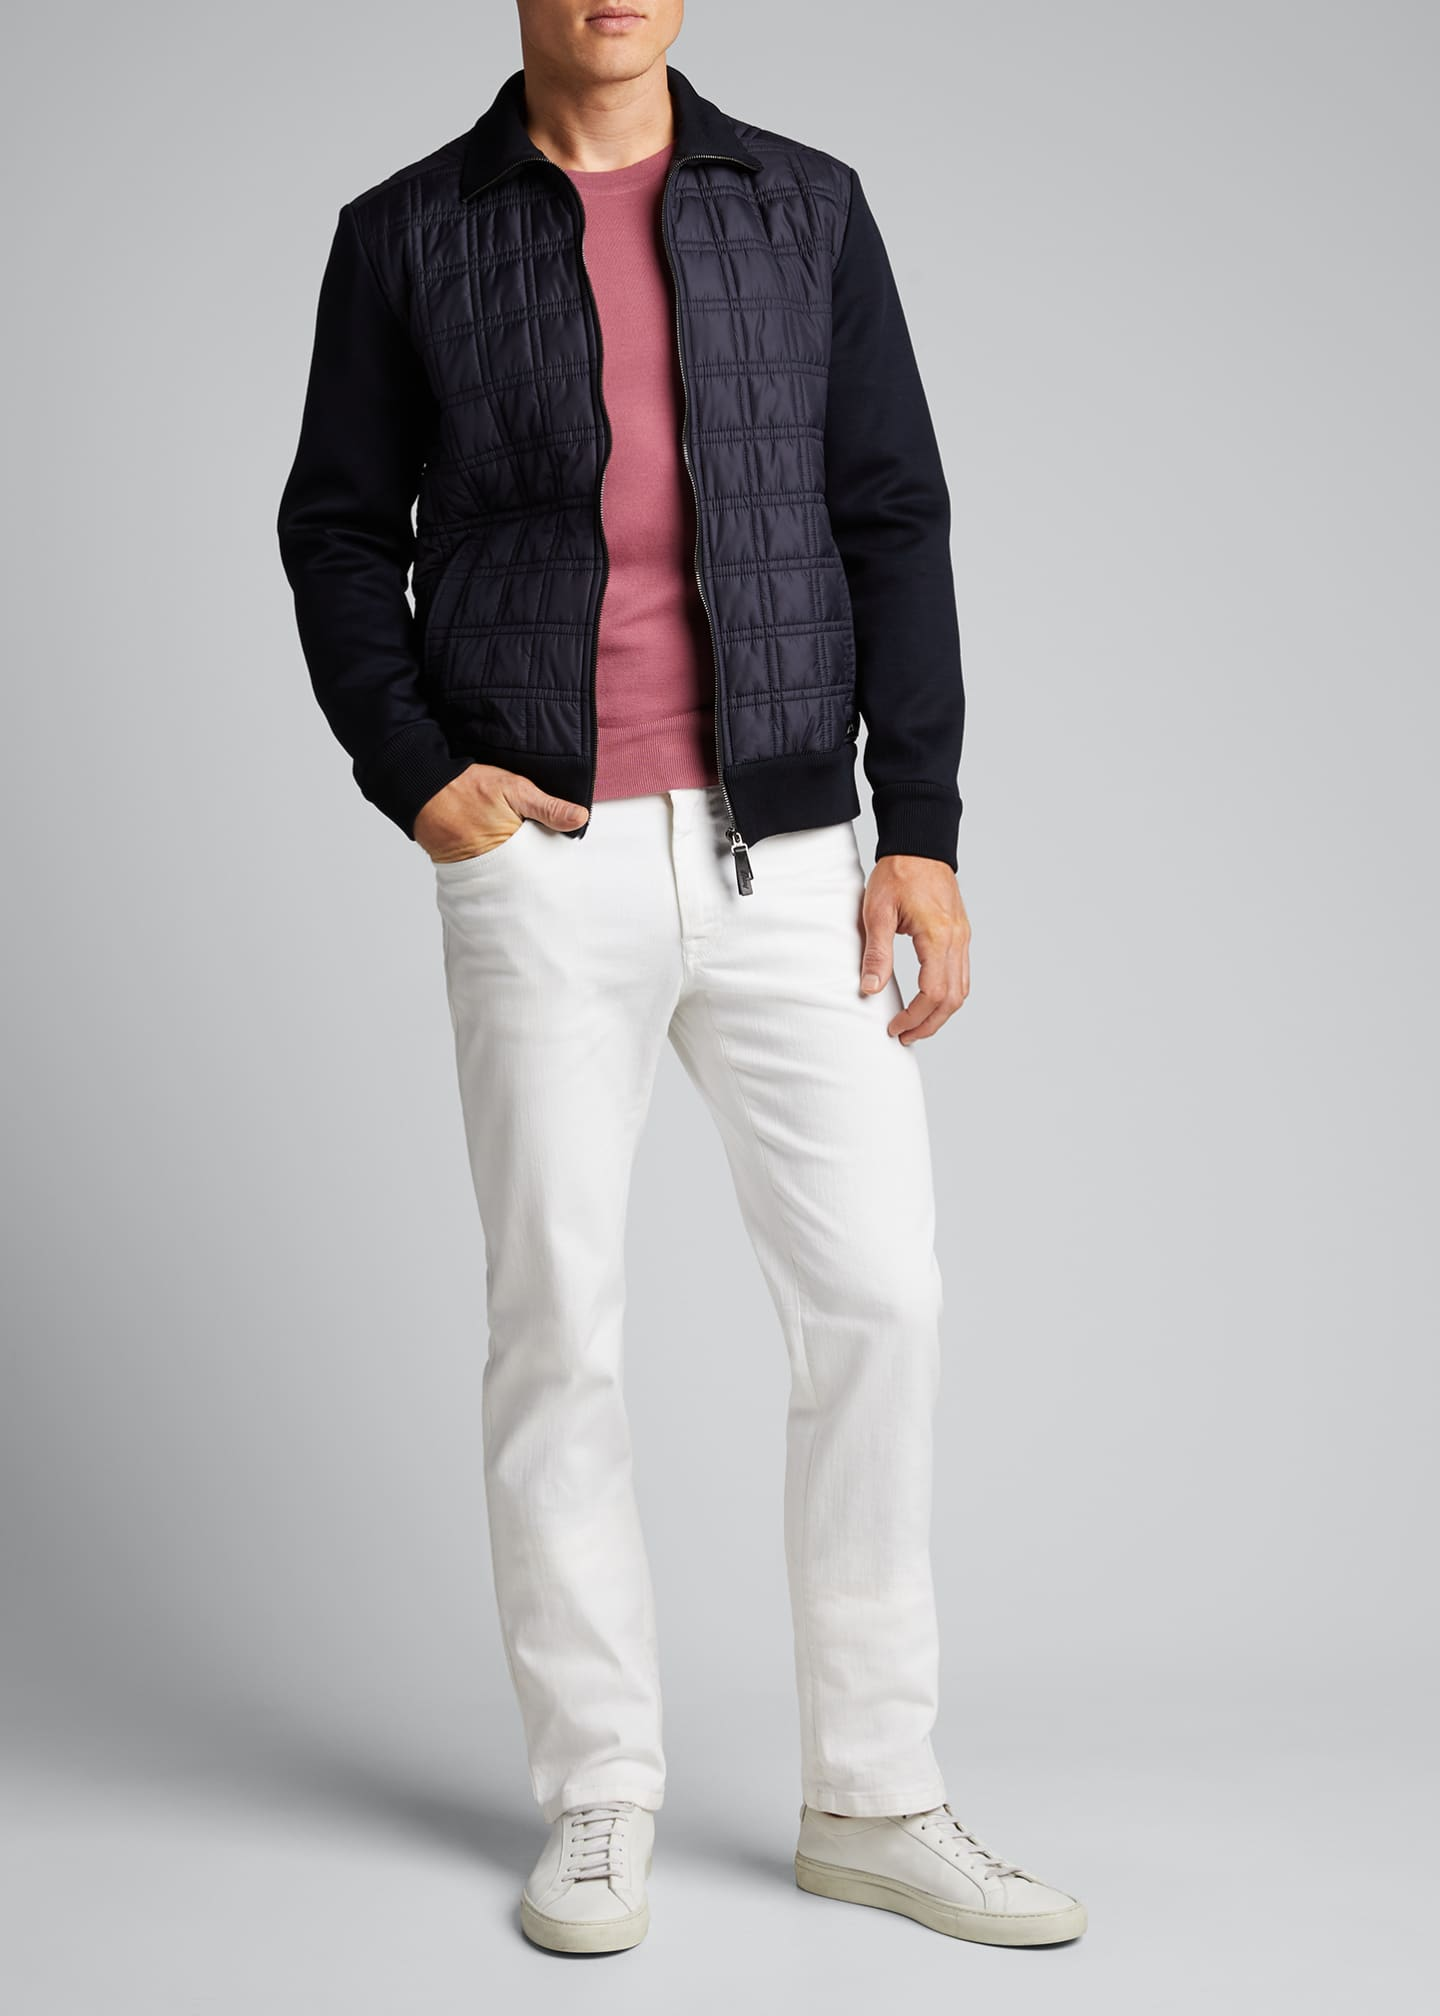 Image 1 of 5: Men's Quilt Knit Blouson Jacket